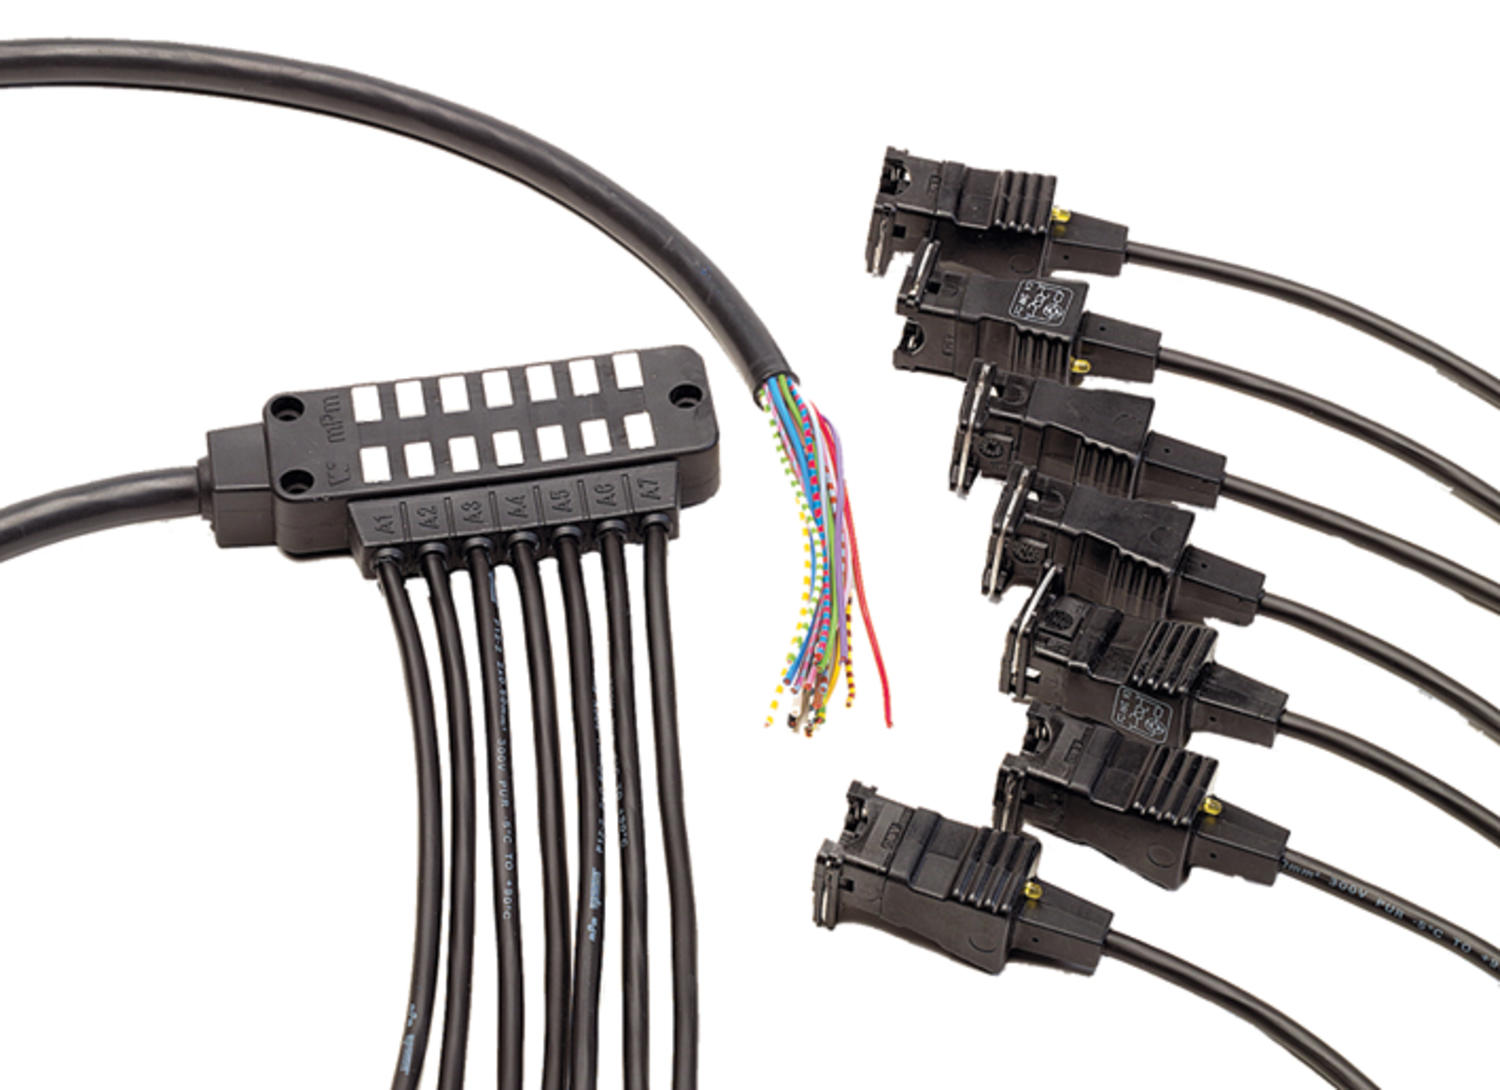 mpm DIN-splitter / Mini-splitter / Y-cable harness